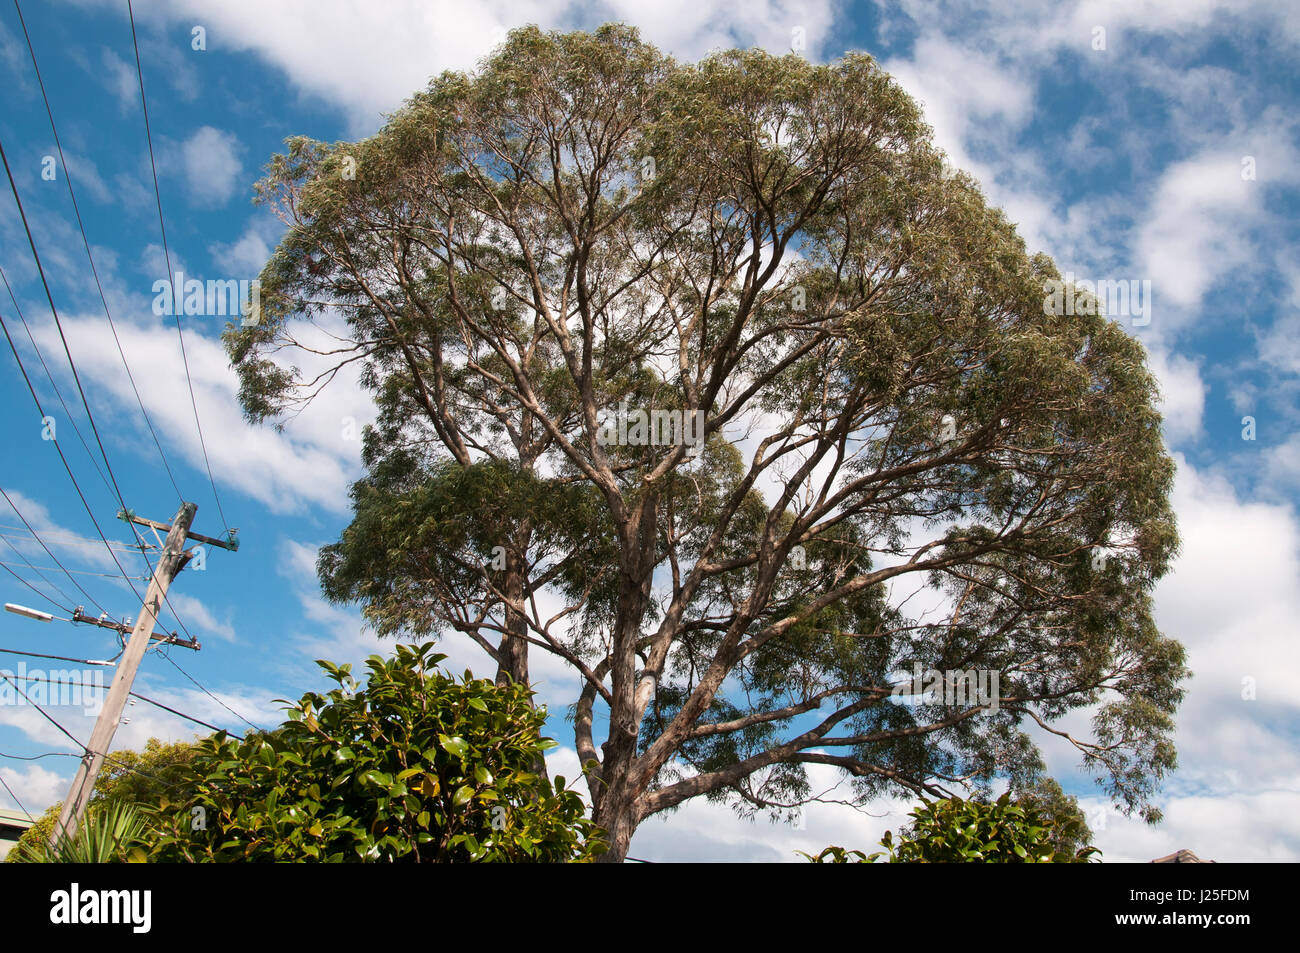 Mature native eucalypt towering above a suburban garden in Melbourne, Australia - Stock Image